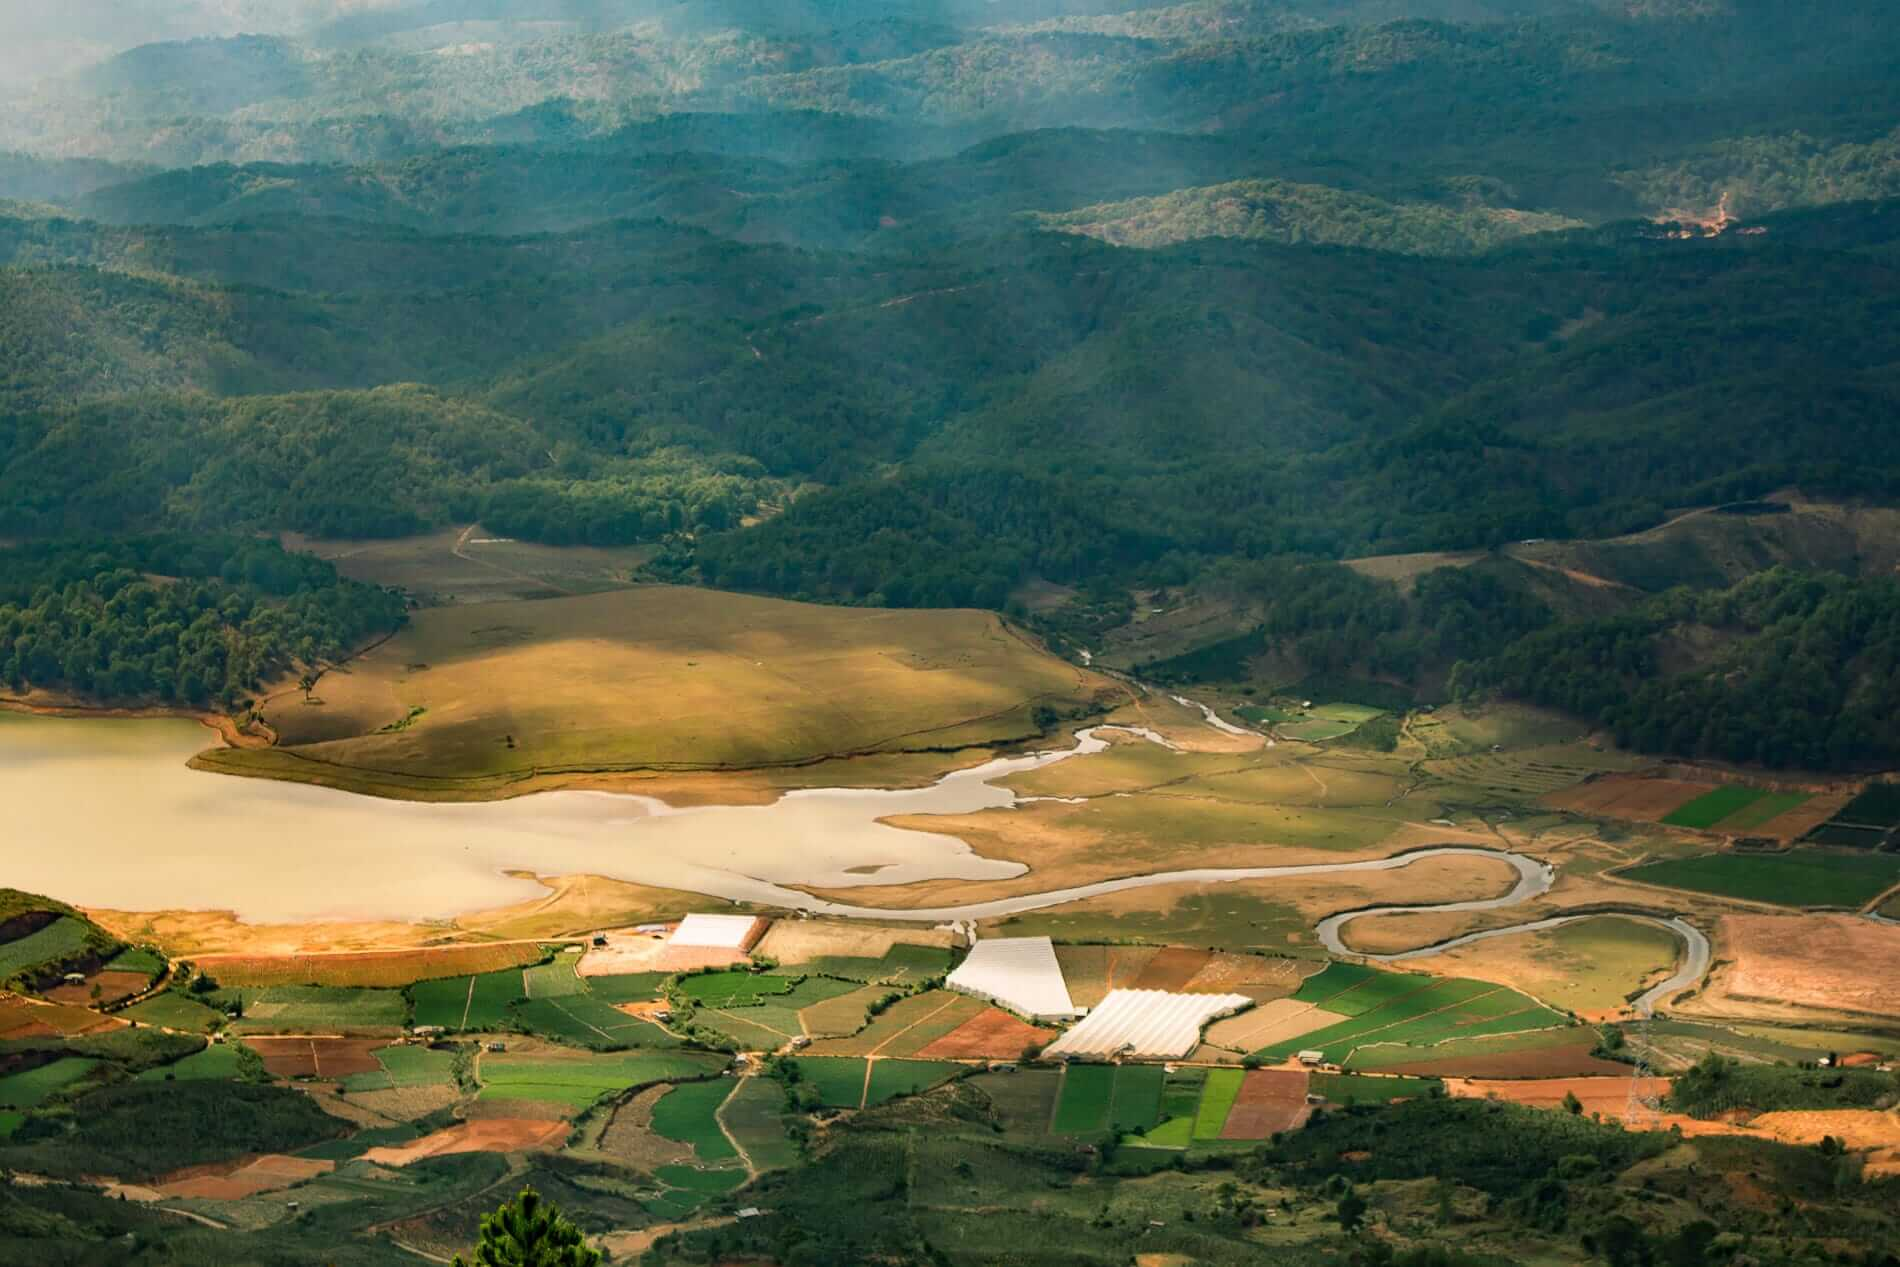 Mountains and fields at Da Lat